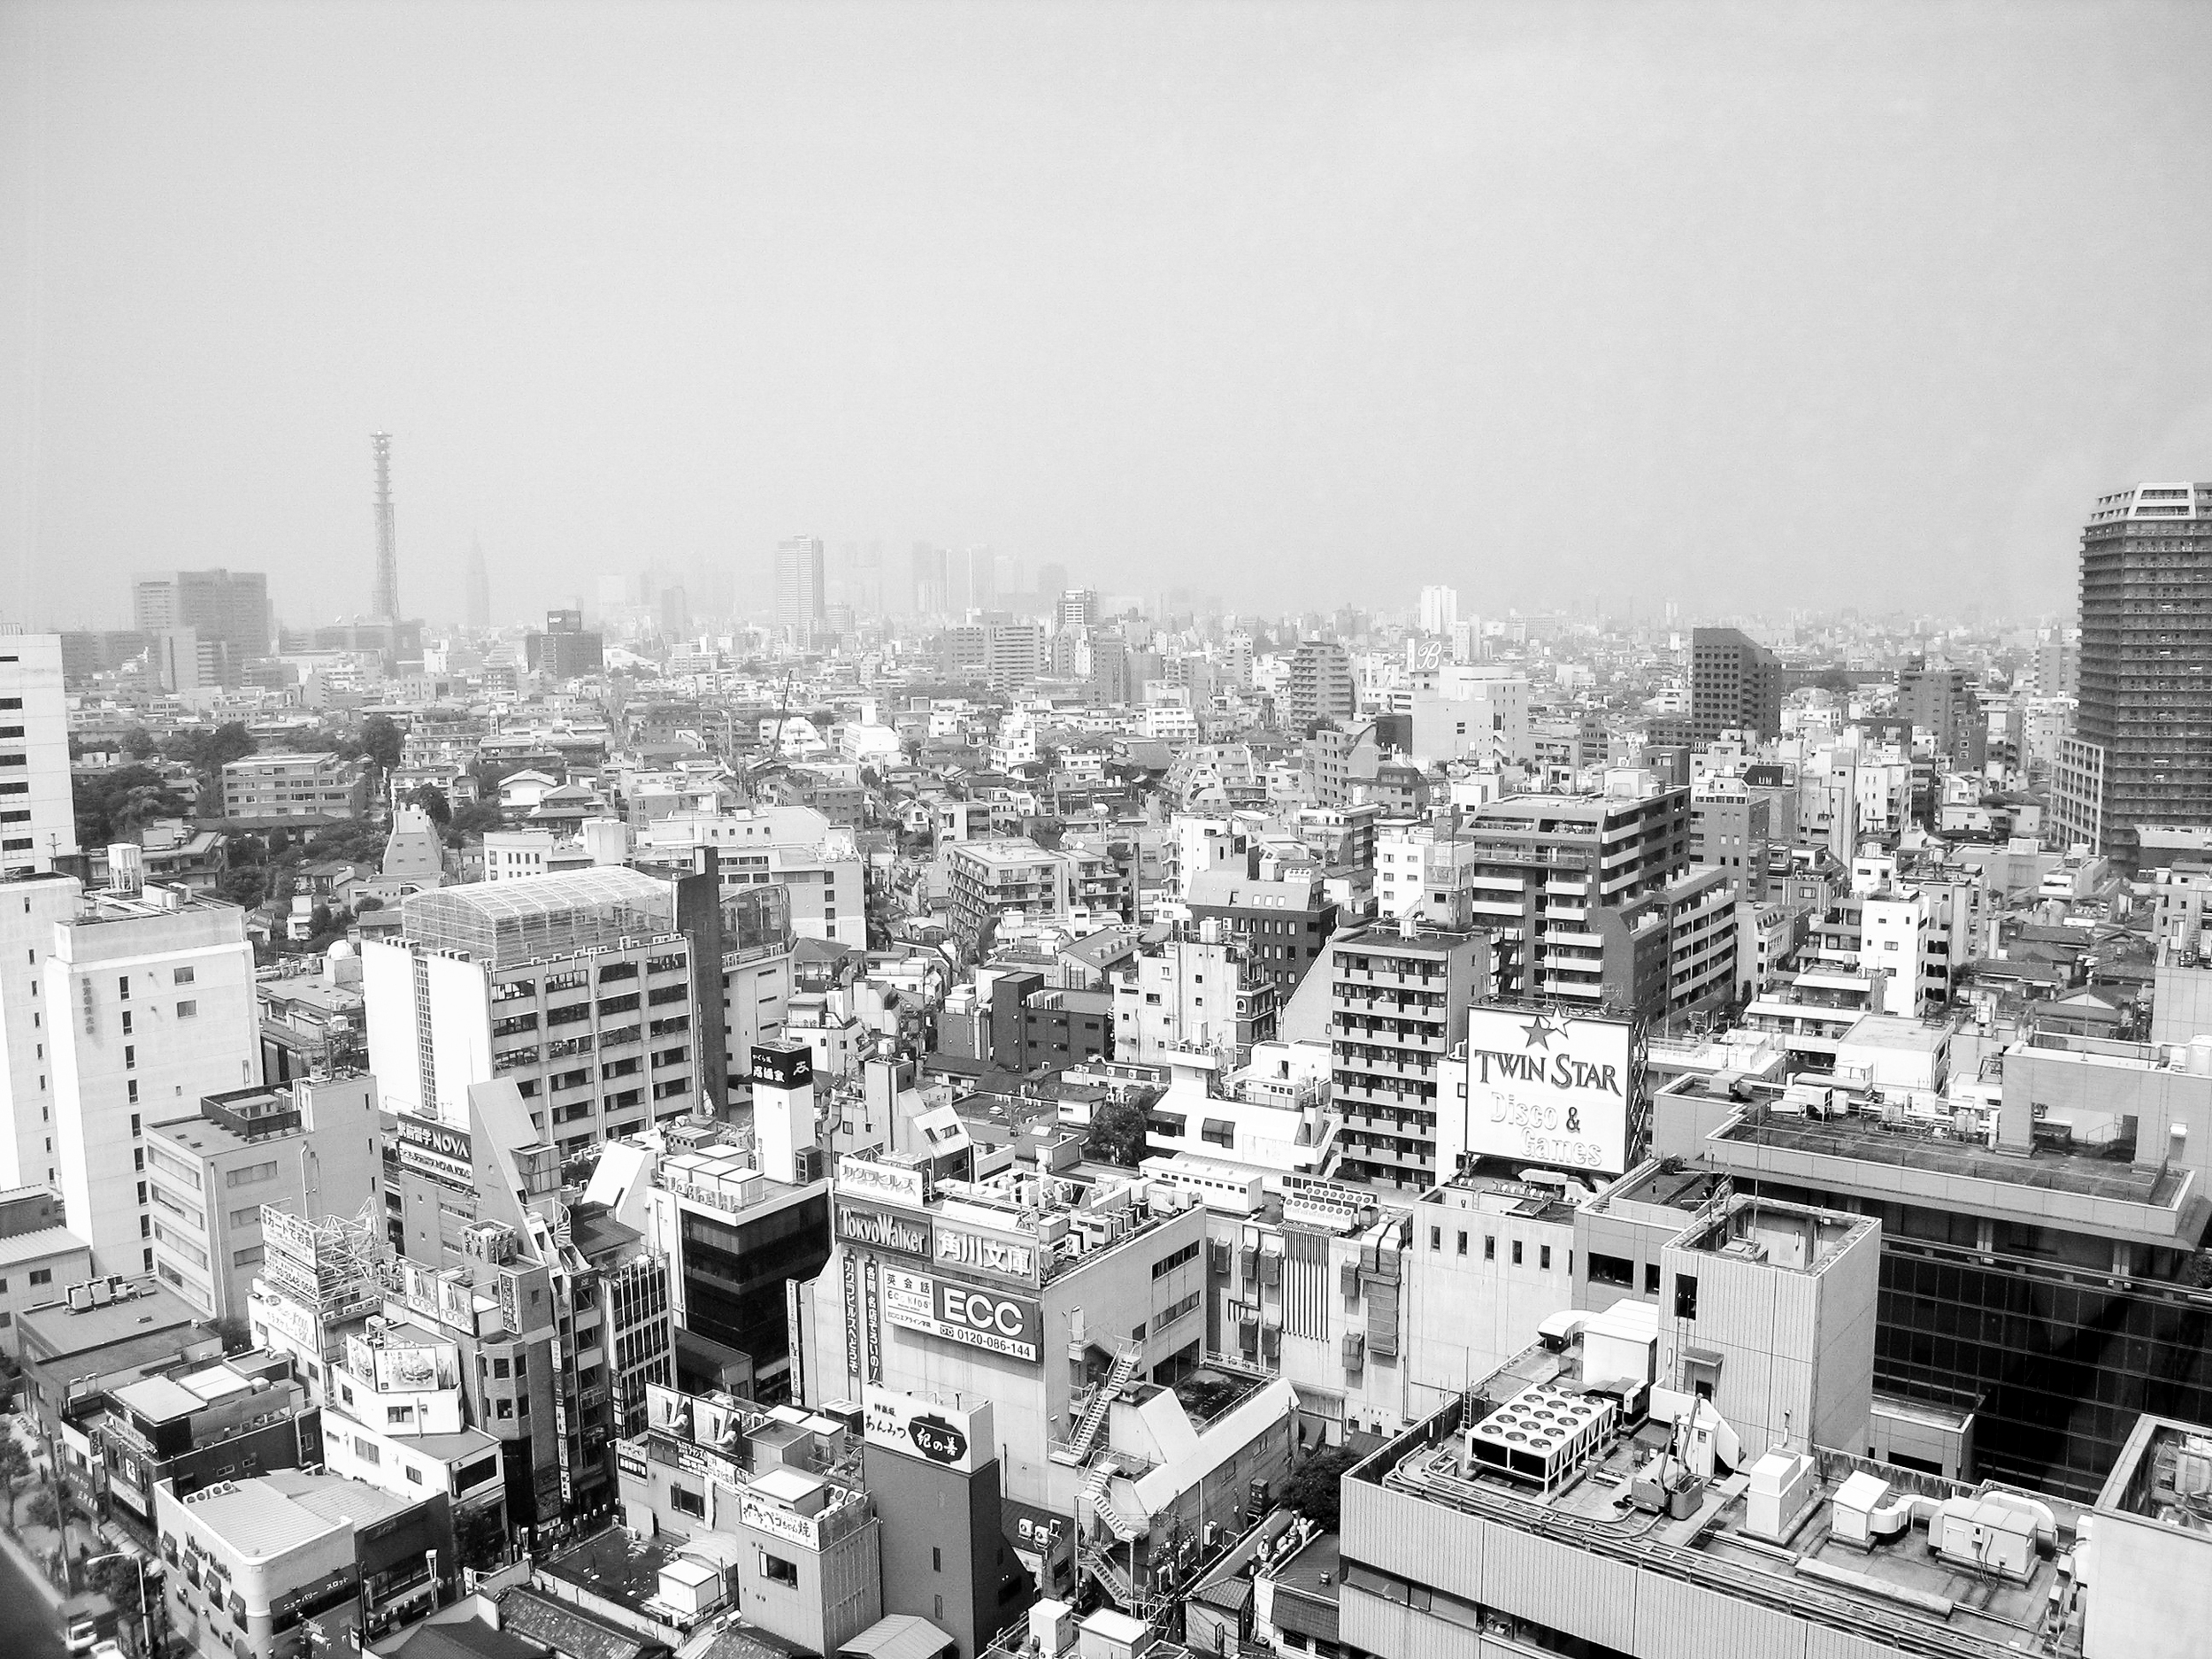 The view of Tokyo's skyline from the Tokyo International Youth Hostel on the 19th floor of a hi-rise in downtown Tokyo.